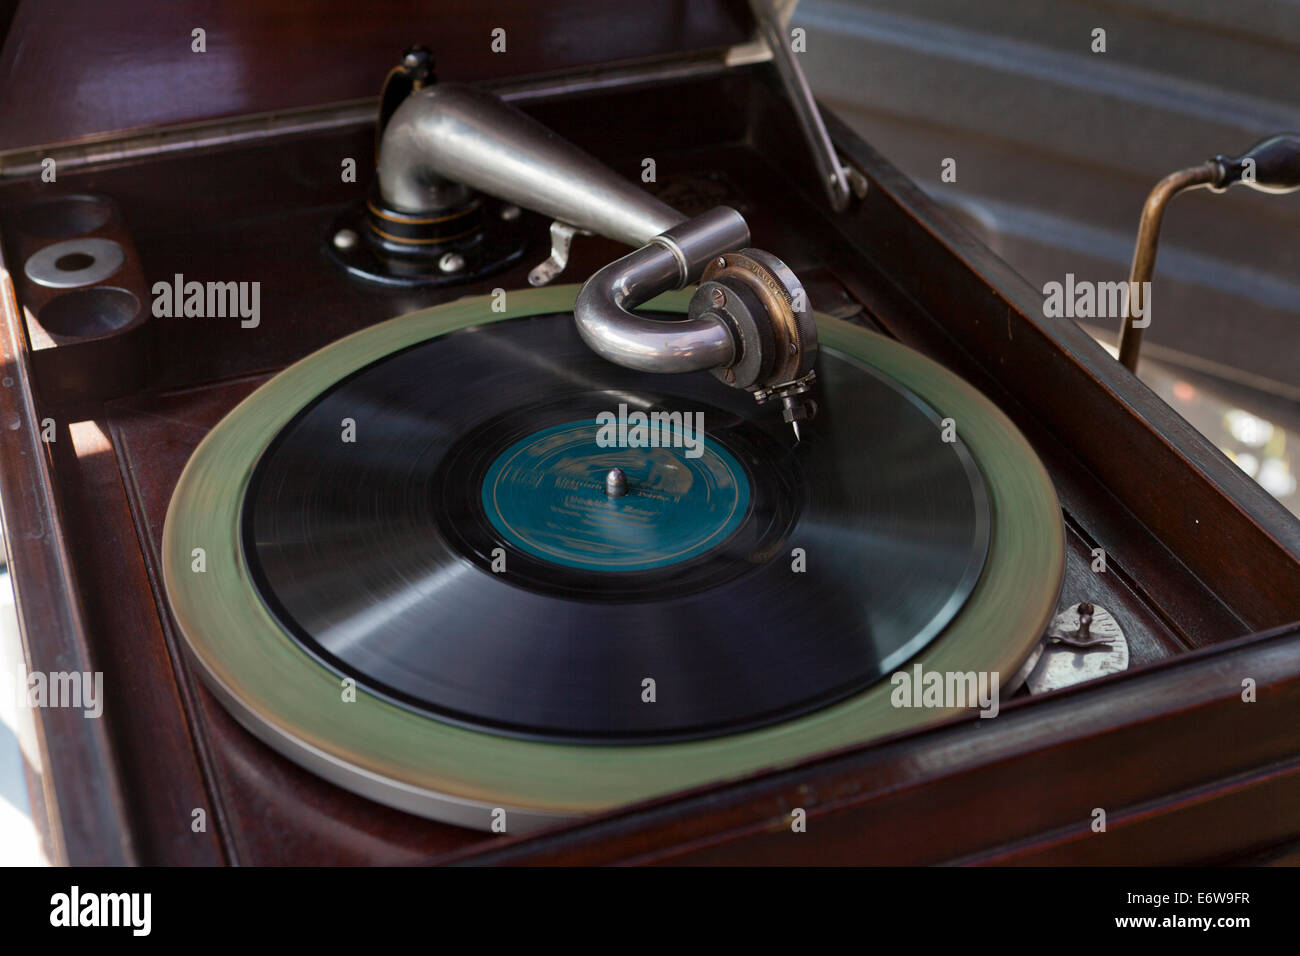 victrola images victrola stock photos victrola stock images alamy 6627